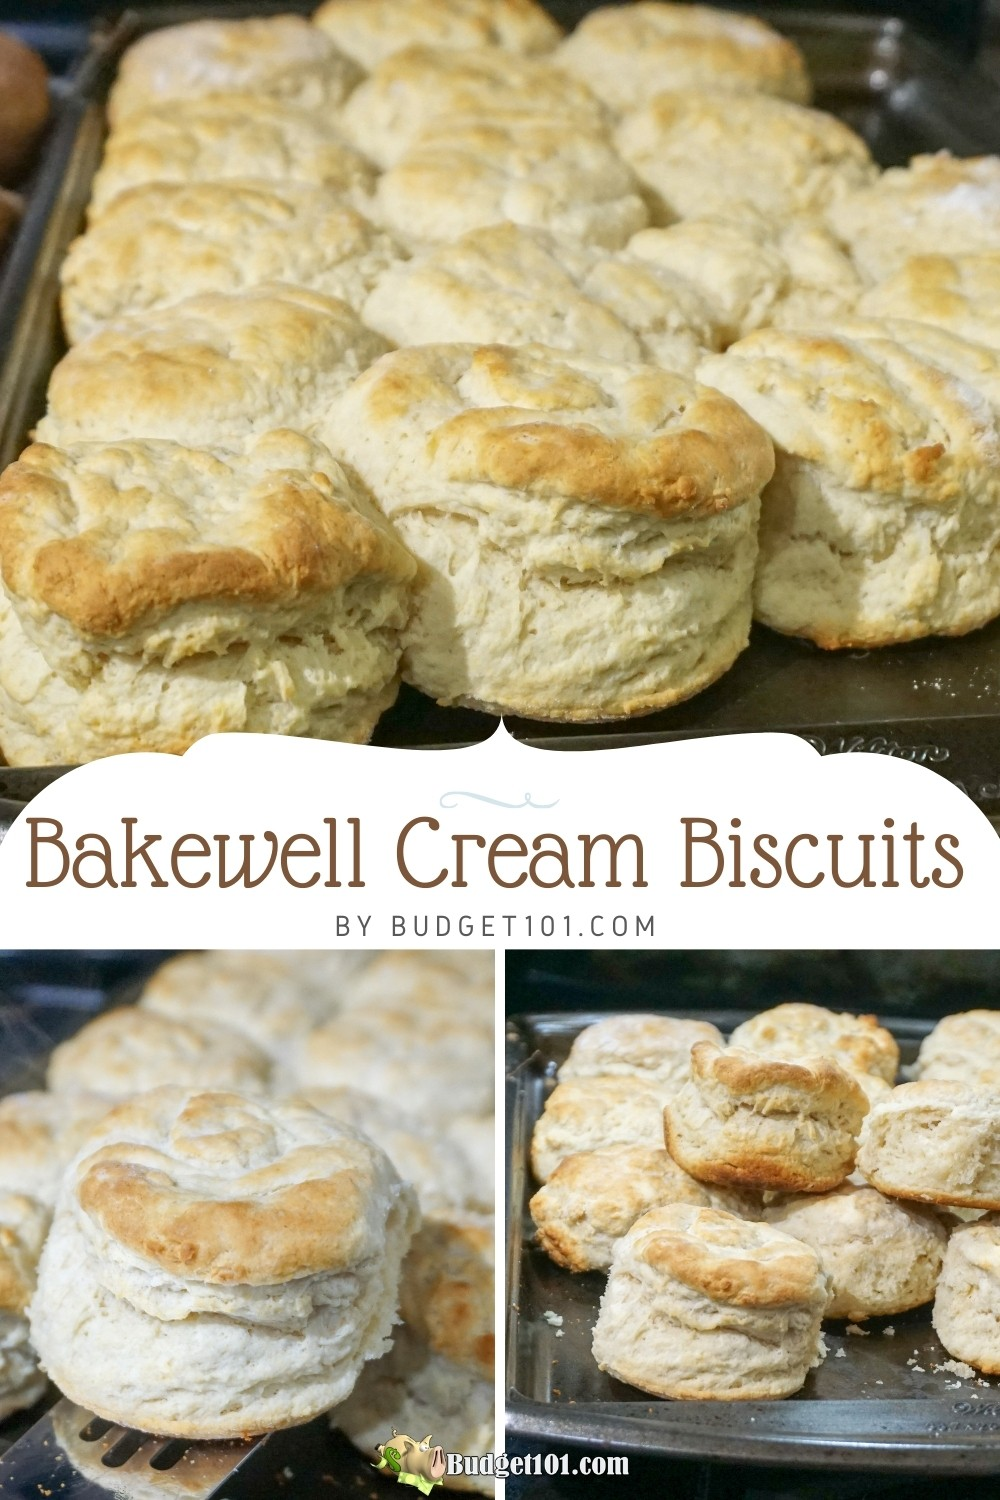 Do you want to know the secret to tall, flaky, light, biscuits? It's bakewell cream! Here's how to make your own, #BakewellCream #biscuits #homemade #MYO #budget101